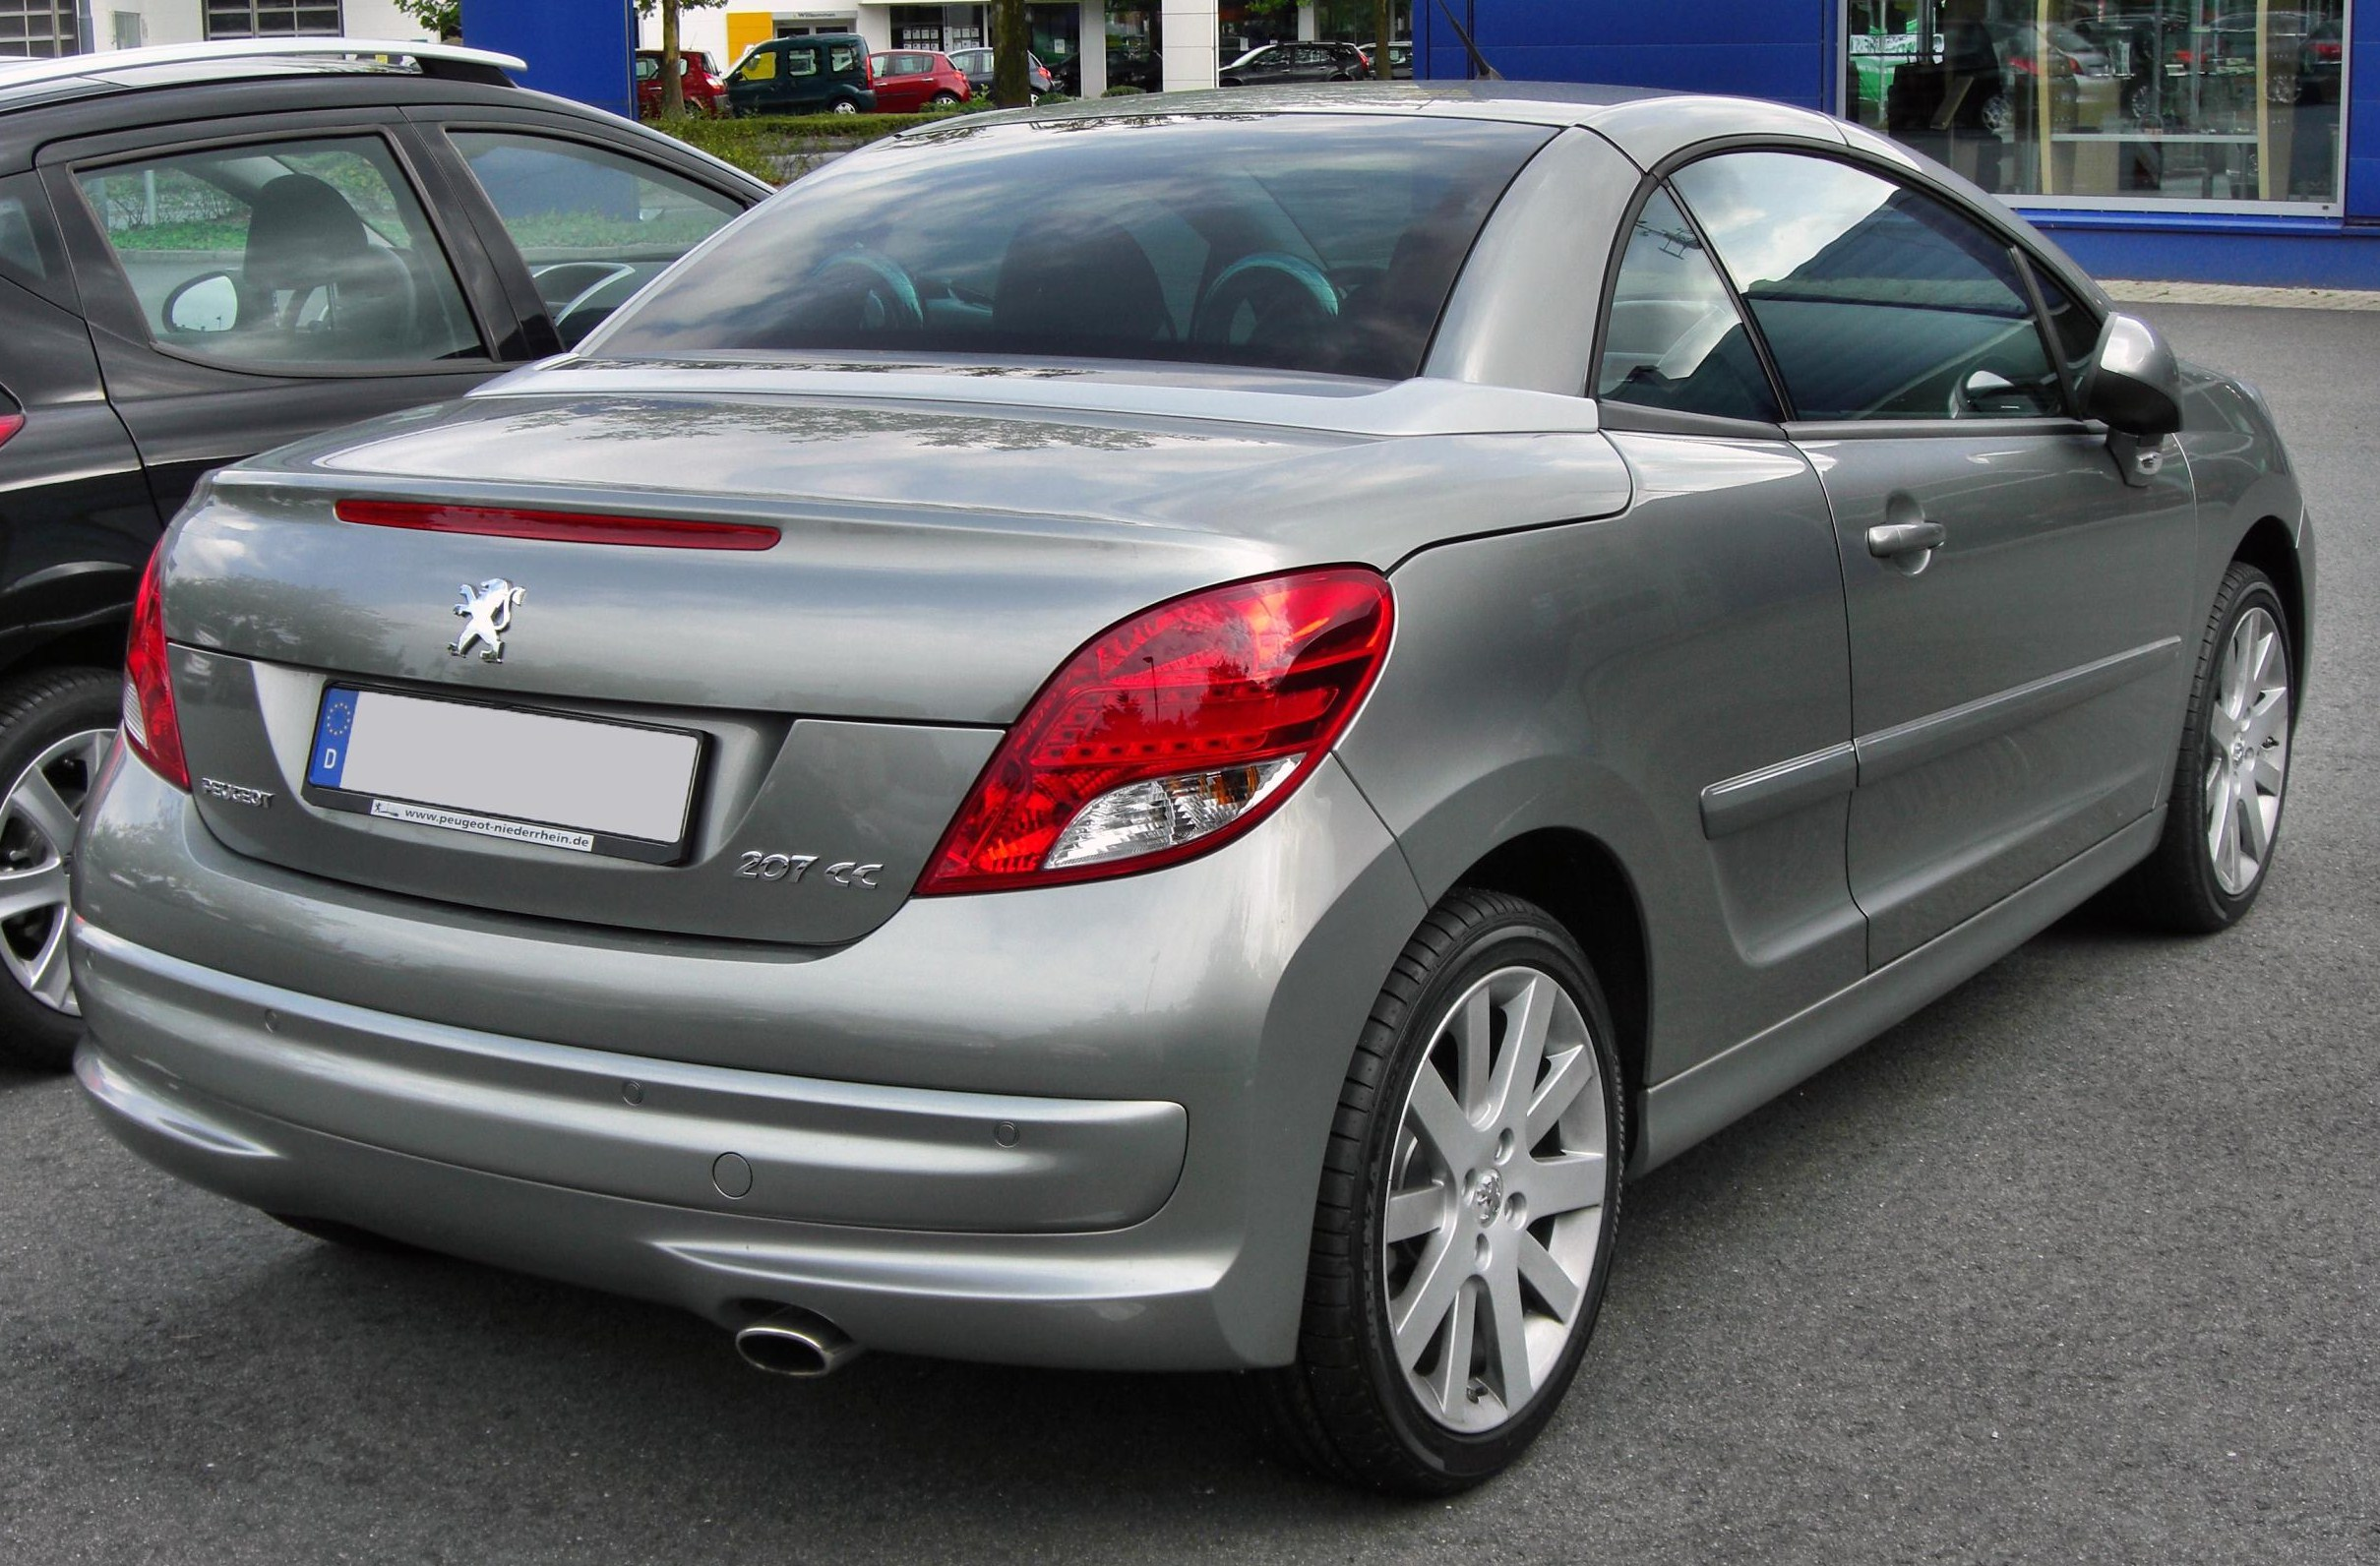 datei peugeot 207 cc facelift 20090906 rear jpg wikipedia. Black Bedroom Furniture Sets. Home Design Ideas